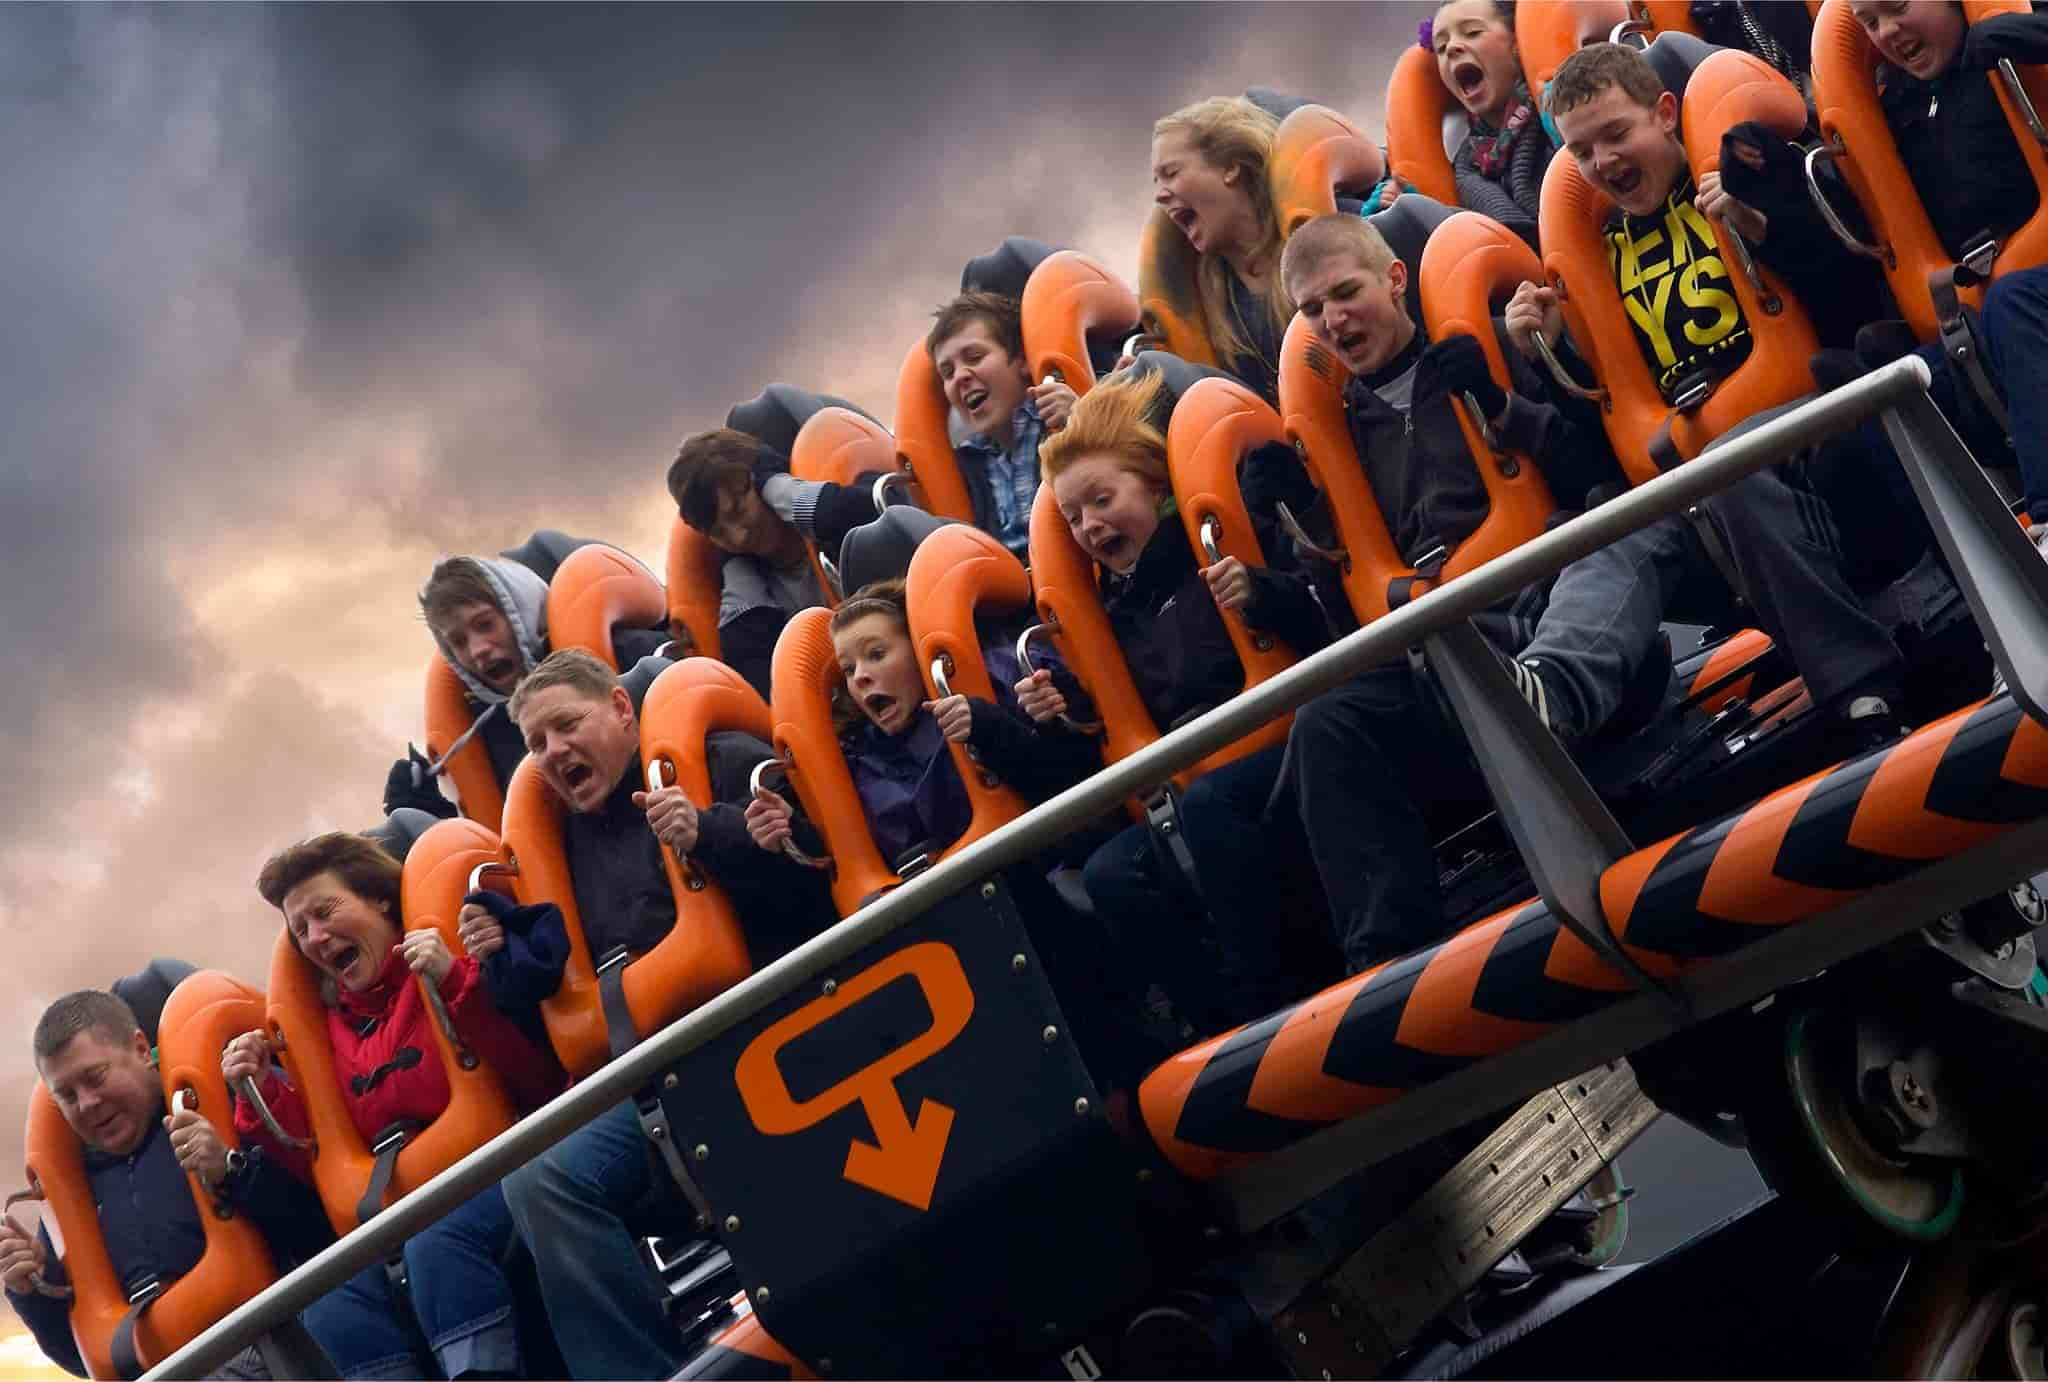 Rides and attractions at Alton Towers